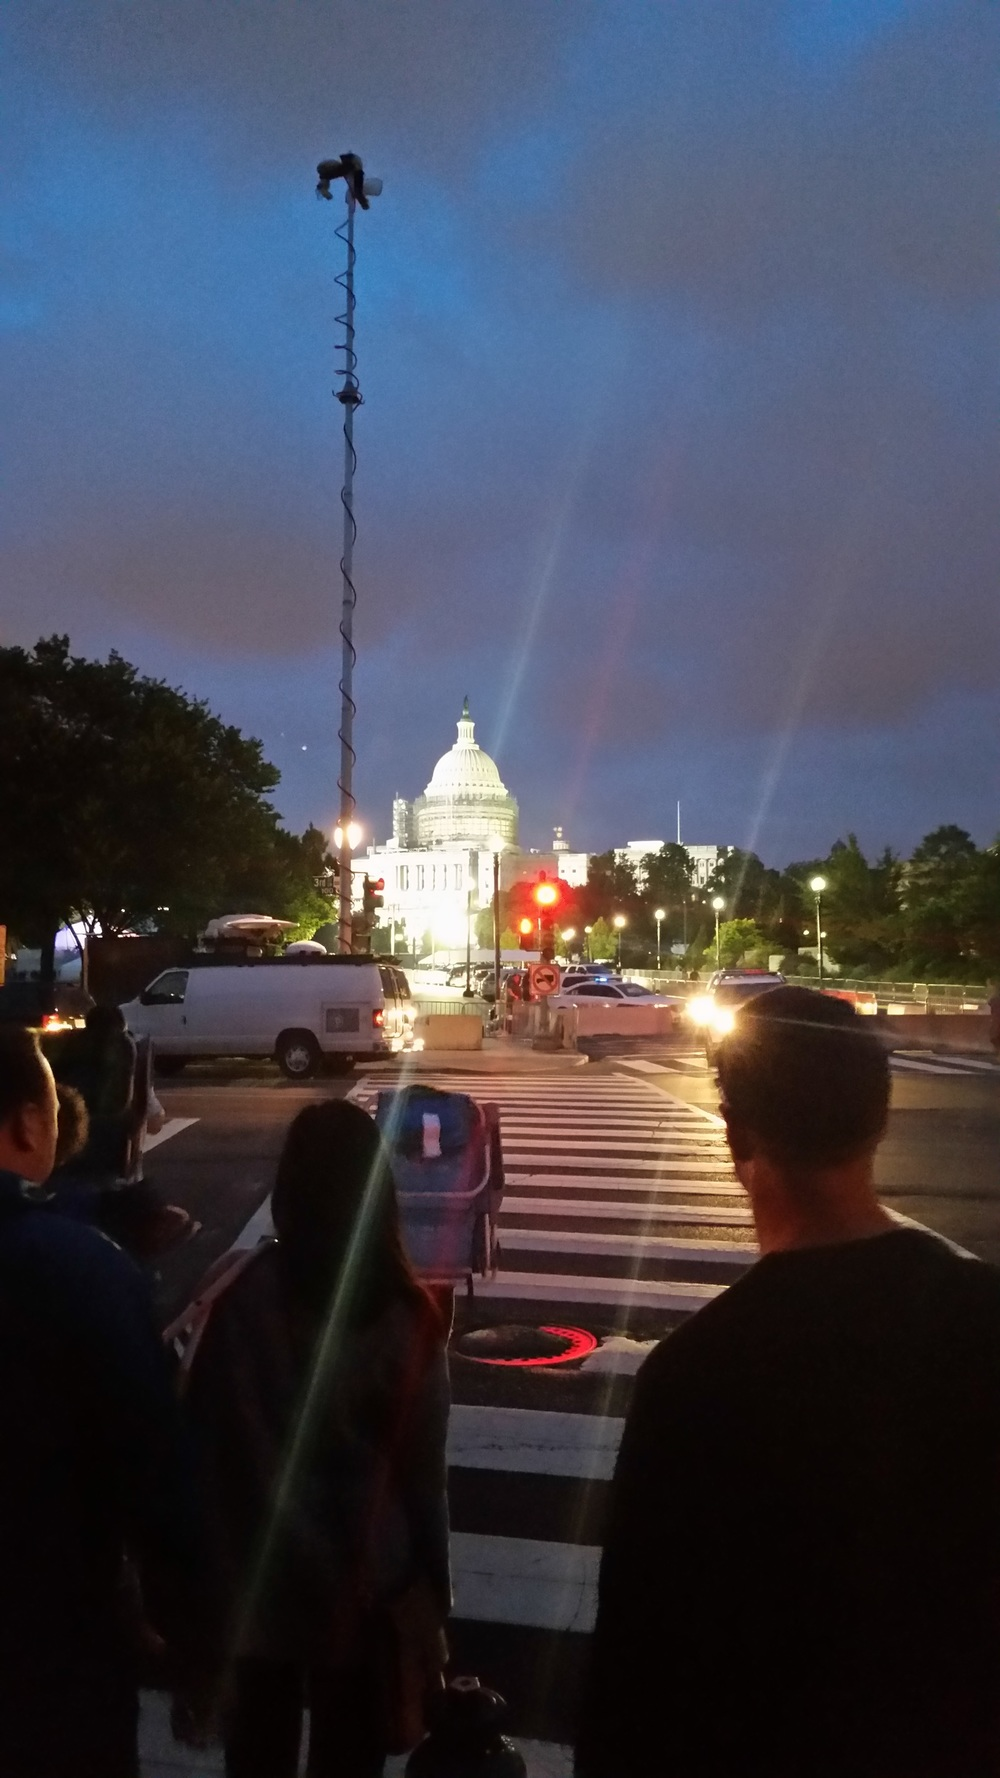 The capitol that night